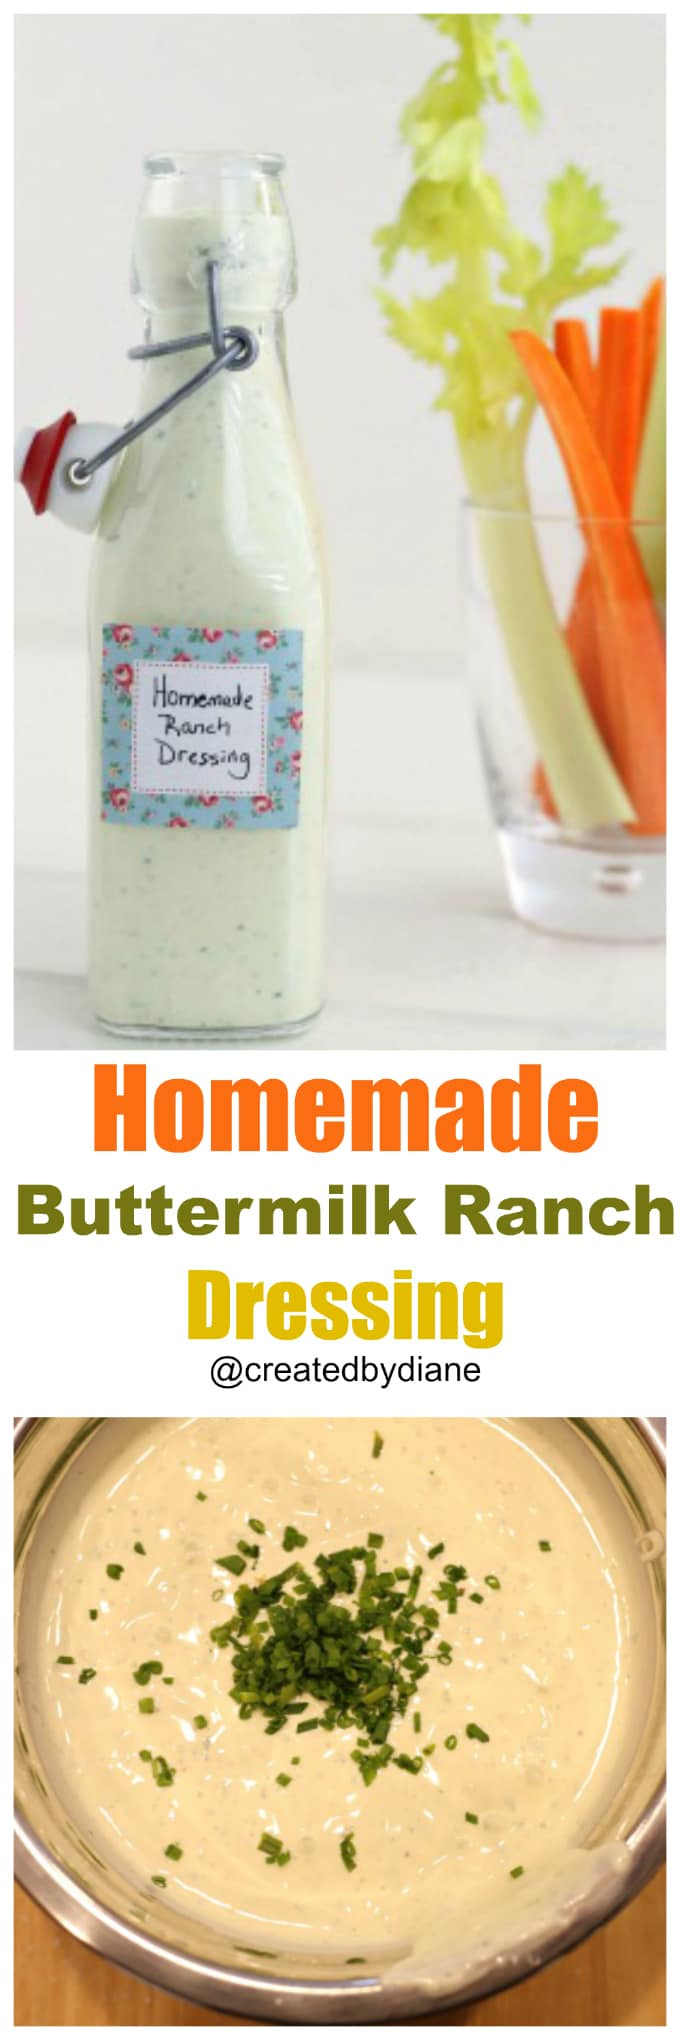 homemade-buttermilk-ranch-dressing